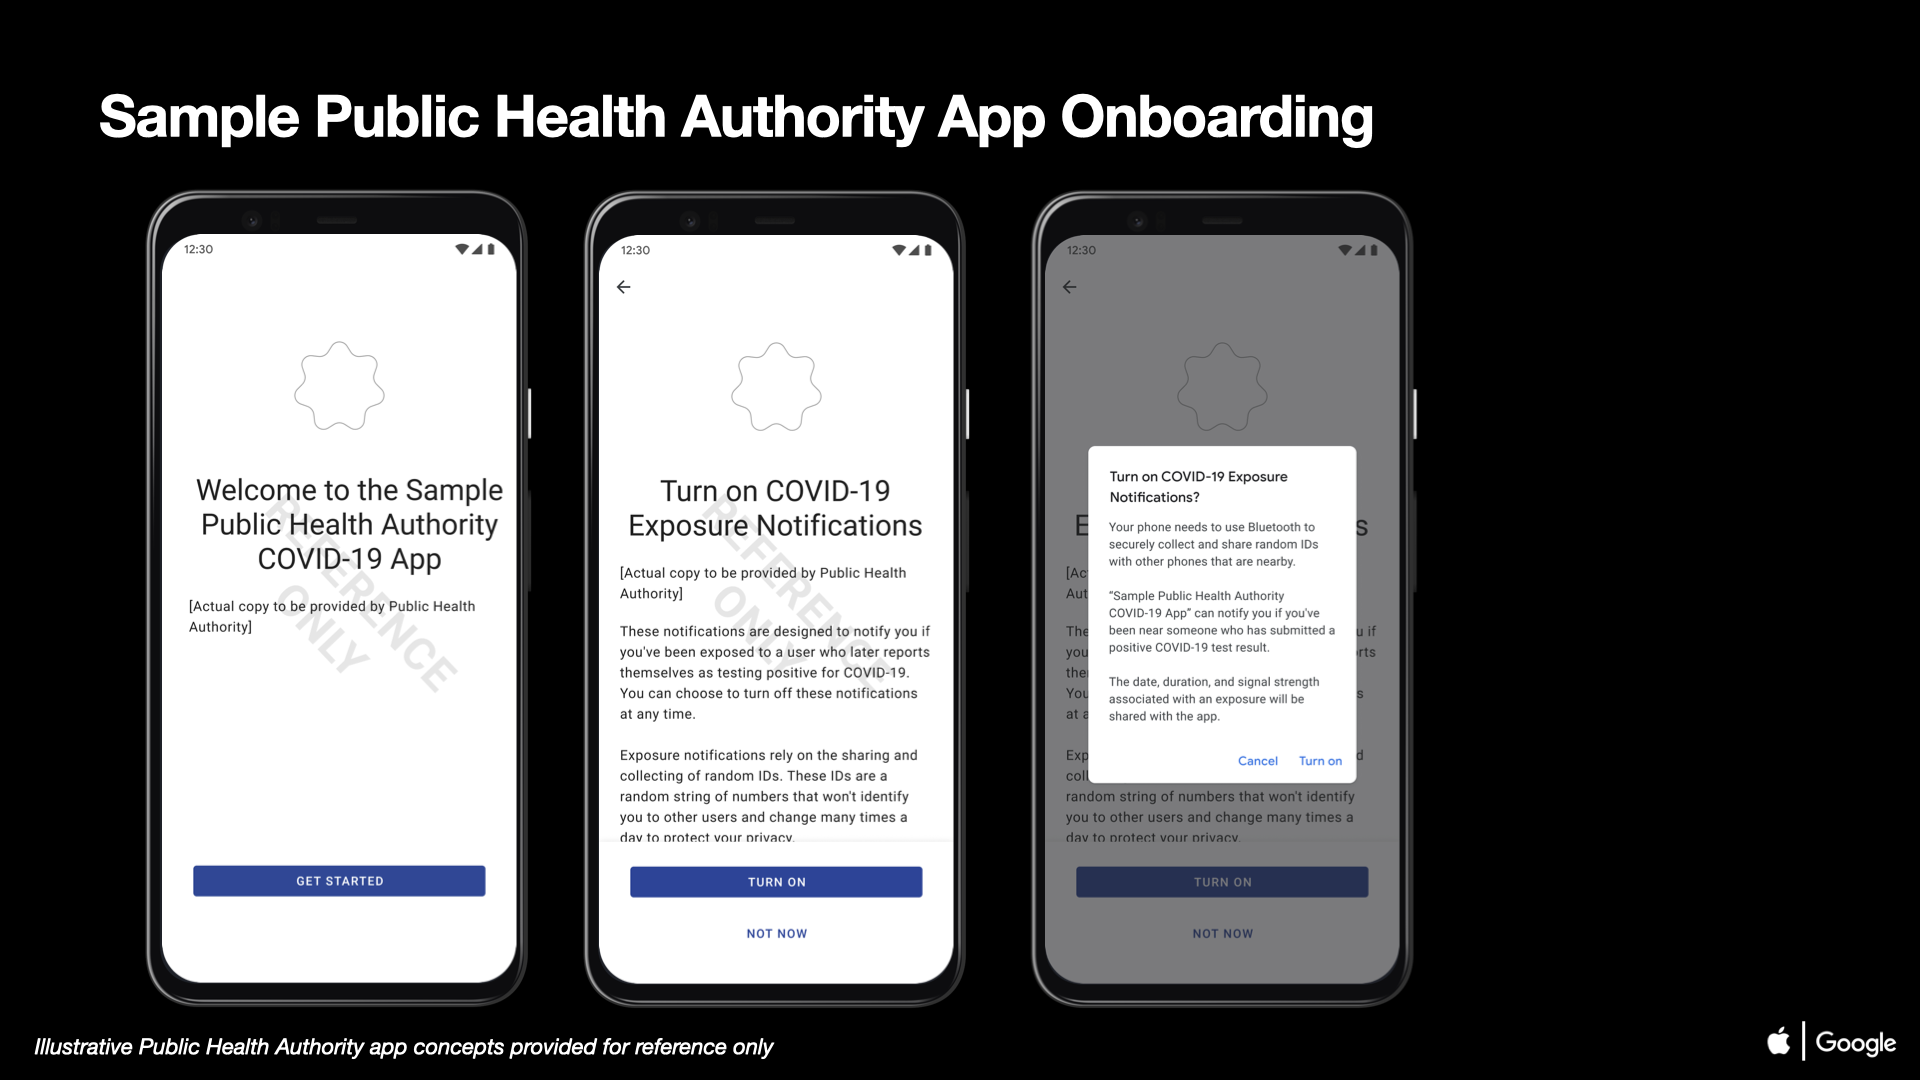 01 COVID-19 Exposure Notifications Sample Public Health Authority App Onboarding Android